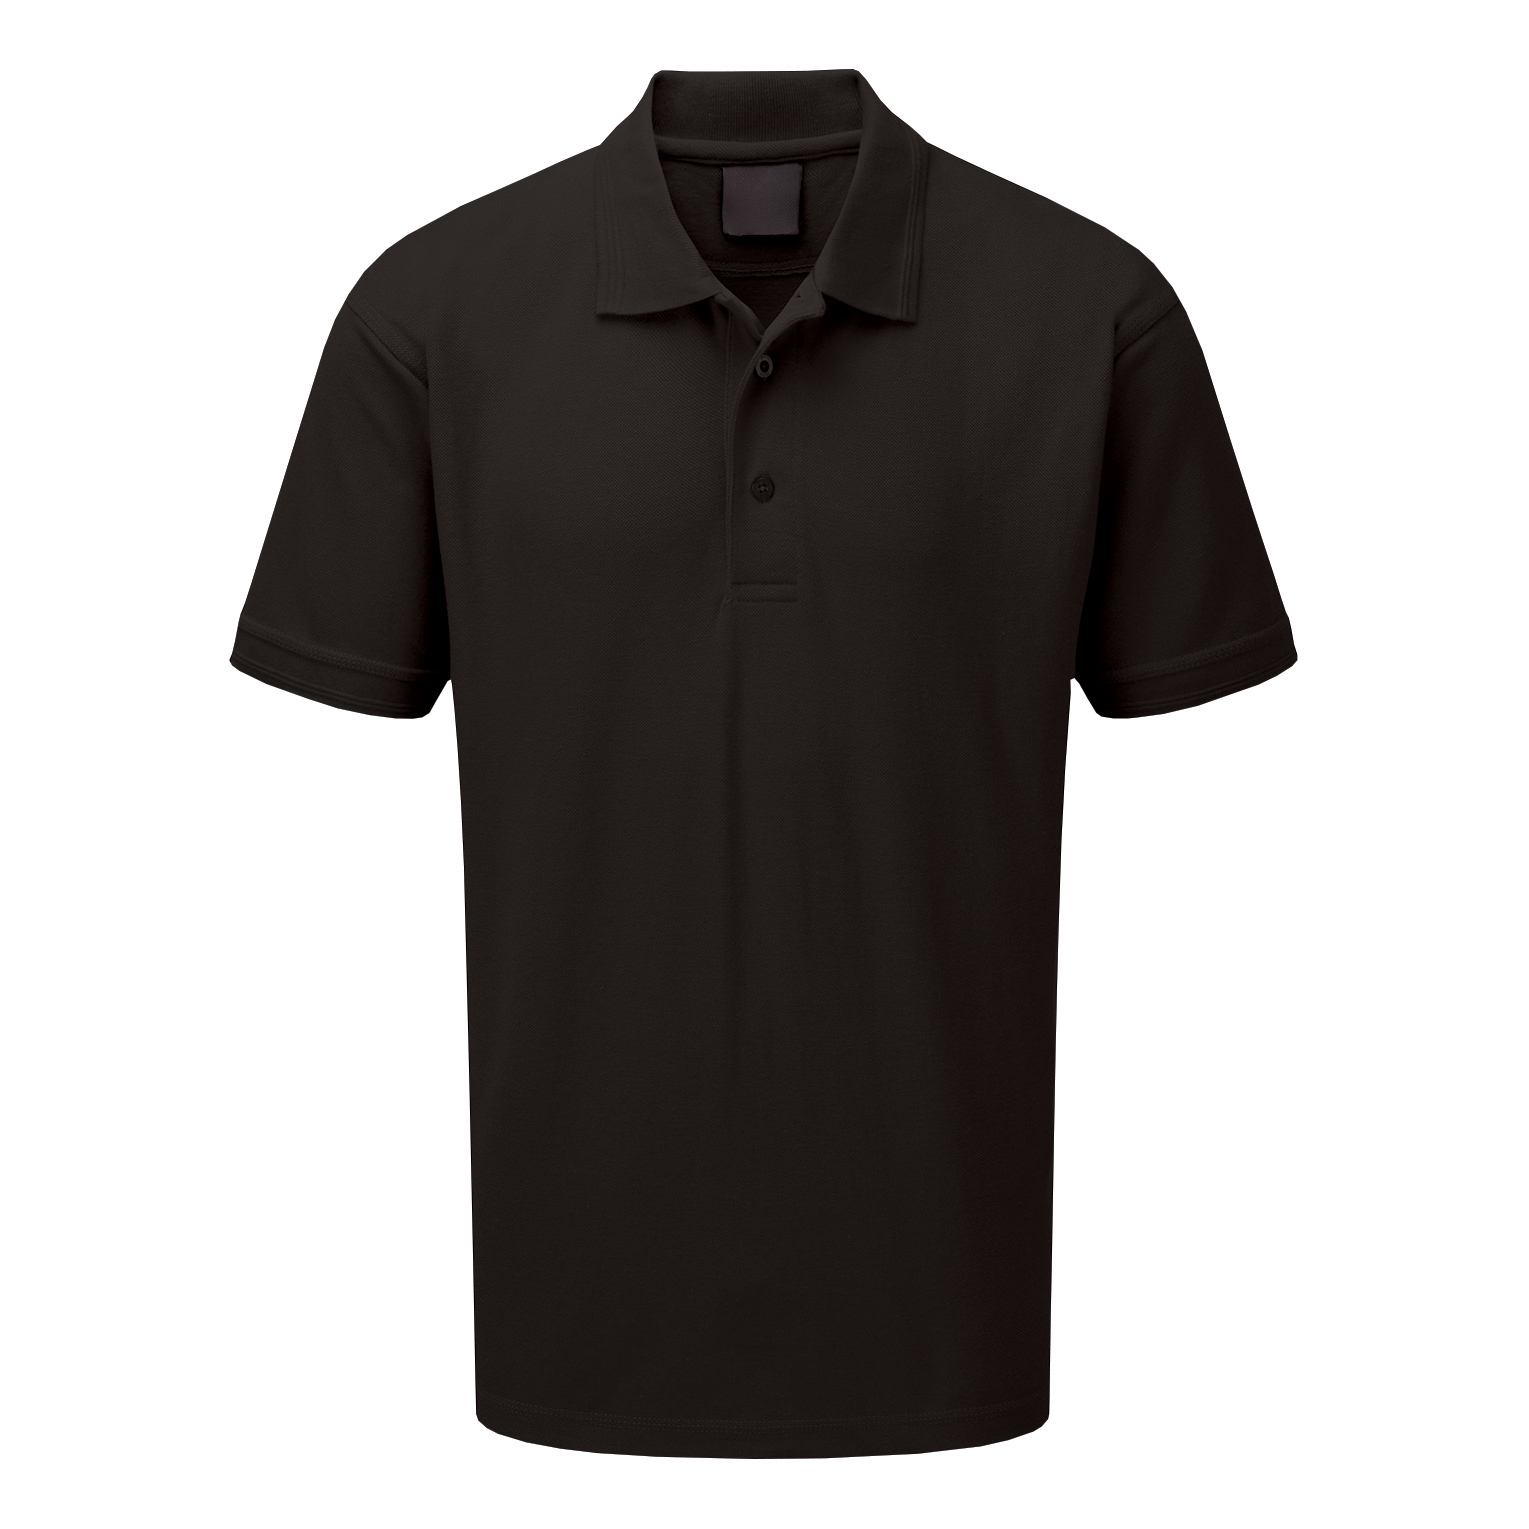 Click Workwear Polo Shirt Polycotton 200gssm Medium Black Ref CLPKSBLM 1-3 Days Lead Time